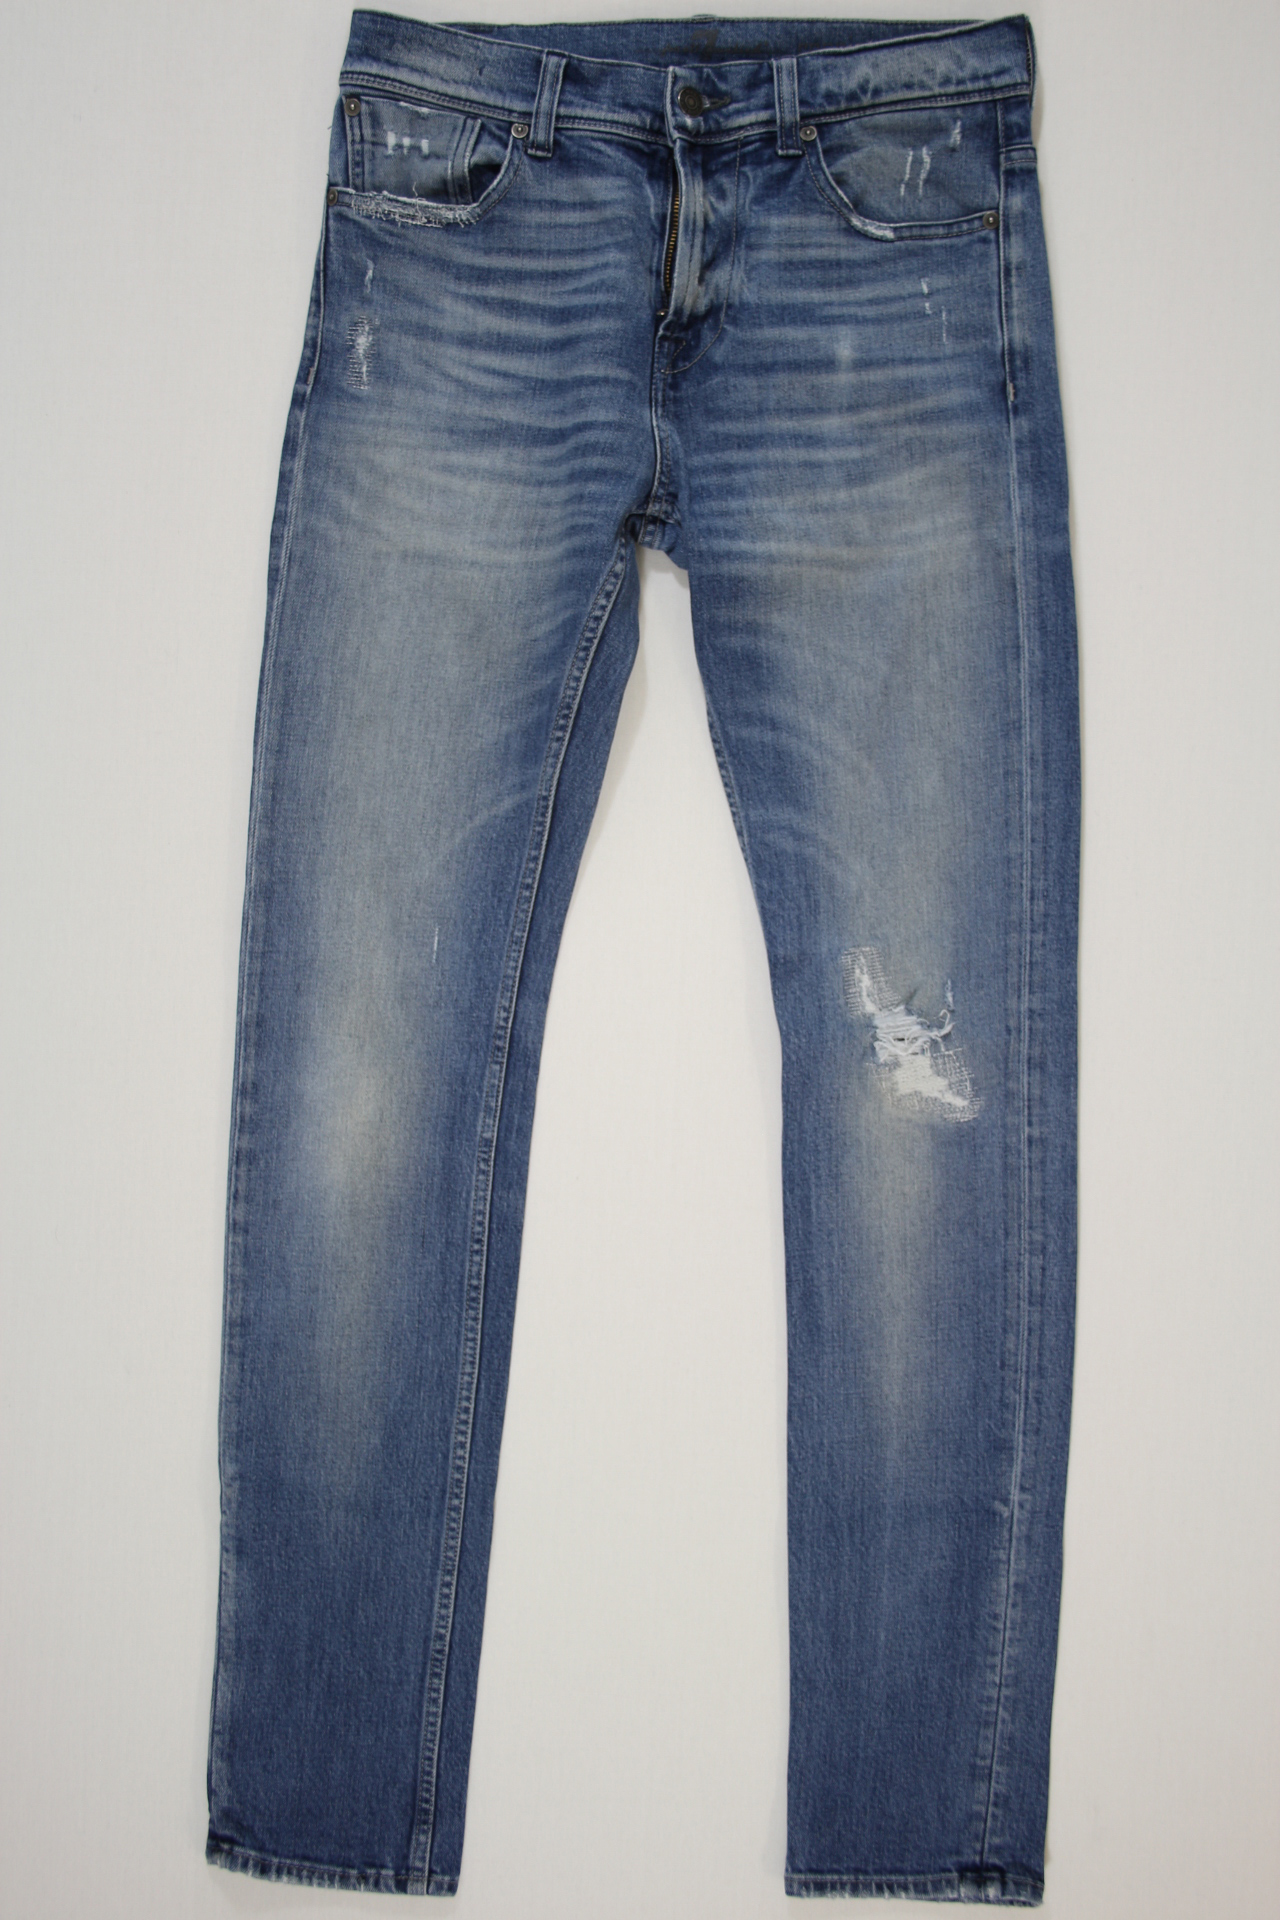 7 For All Mankind Ronnie Vintage Colection blauw